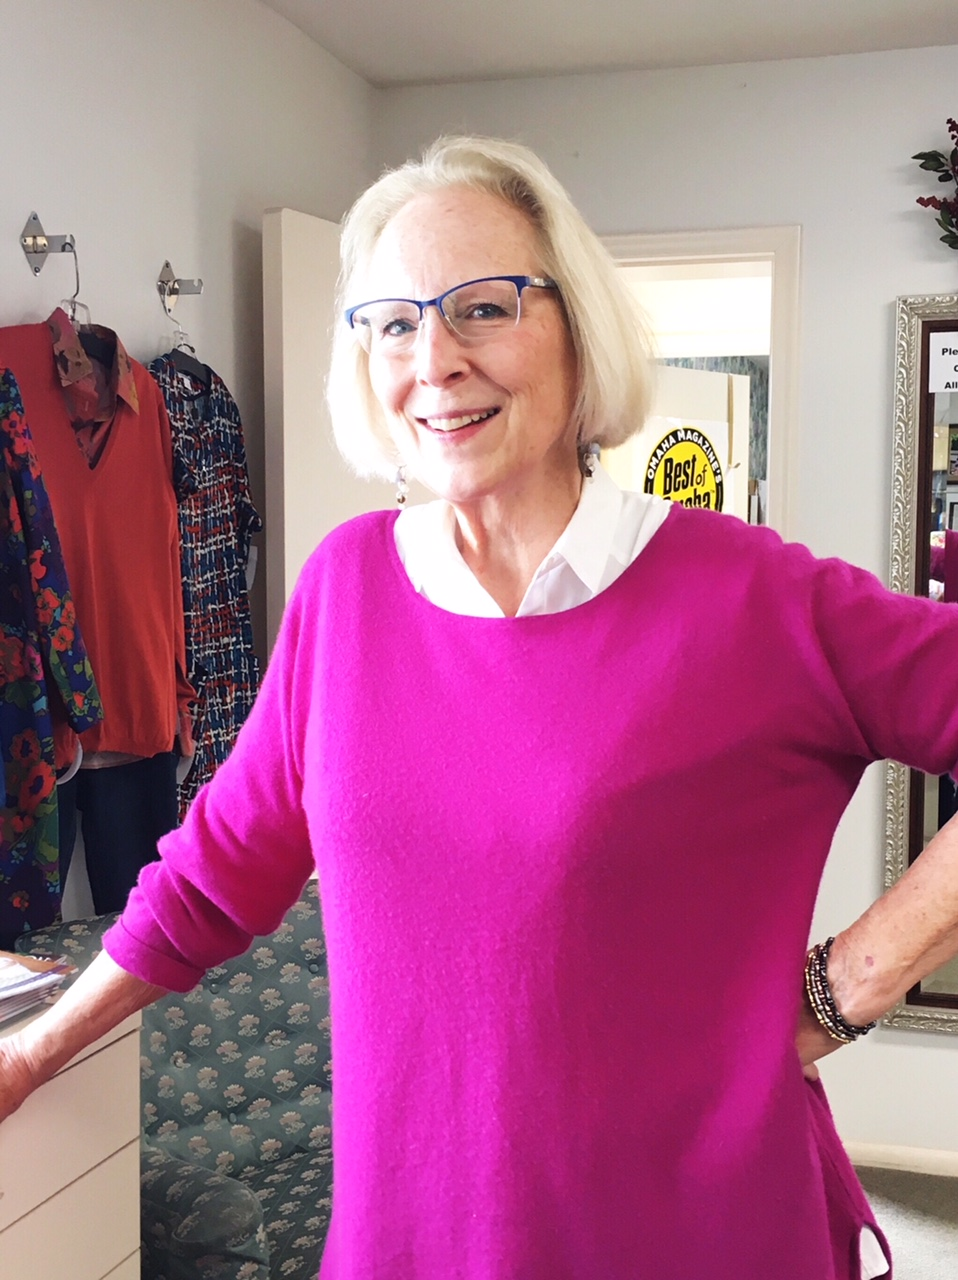 Trish Lonergan at Esther's, a store founded by her mother more than 40 years ago. (Photo by Kathleen Connor, Among Other Things)